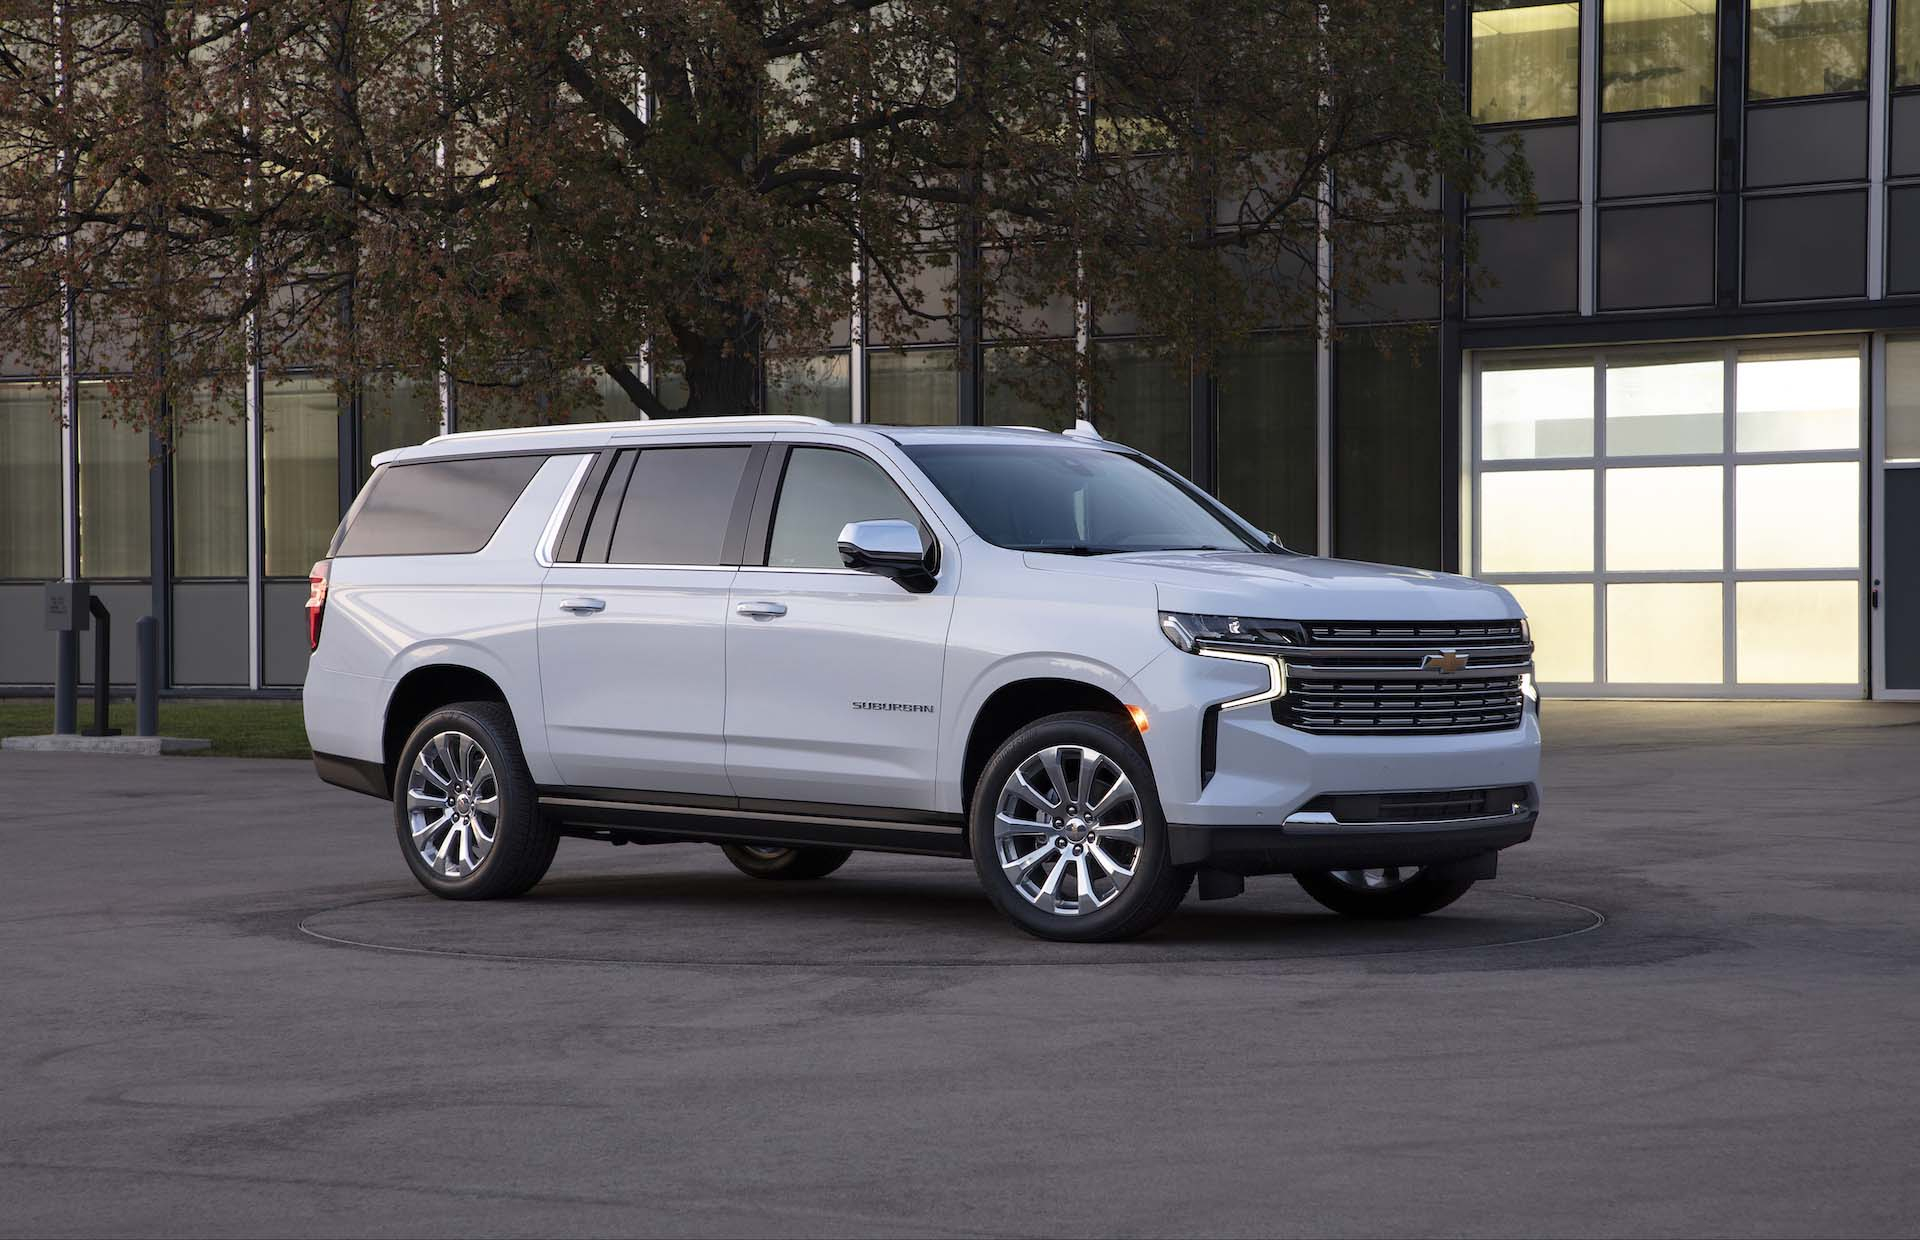 2021 Chevrolet Suburban (Chevy) Review, Ratings, Specs 2021 Chevy Suburban Price, Pictures, Cost